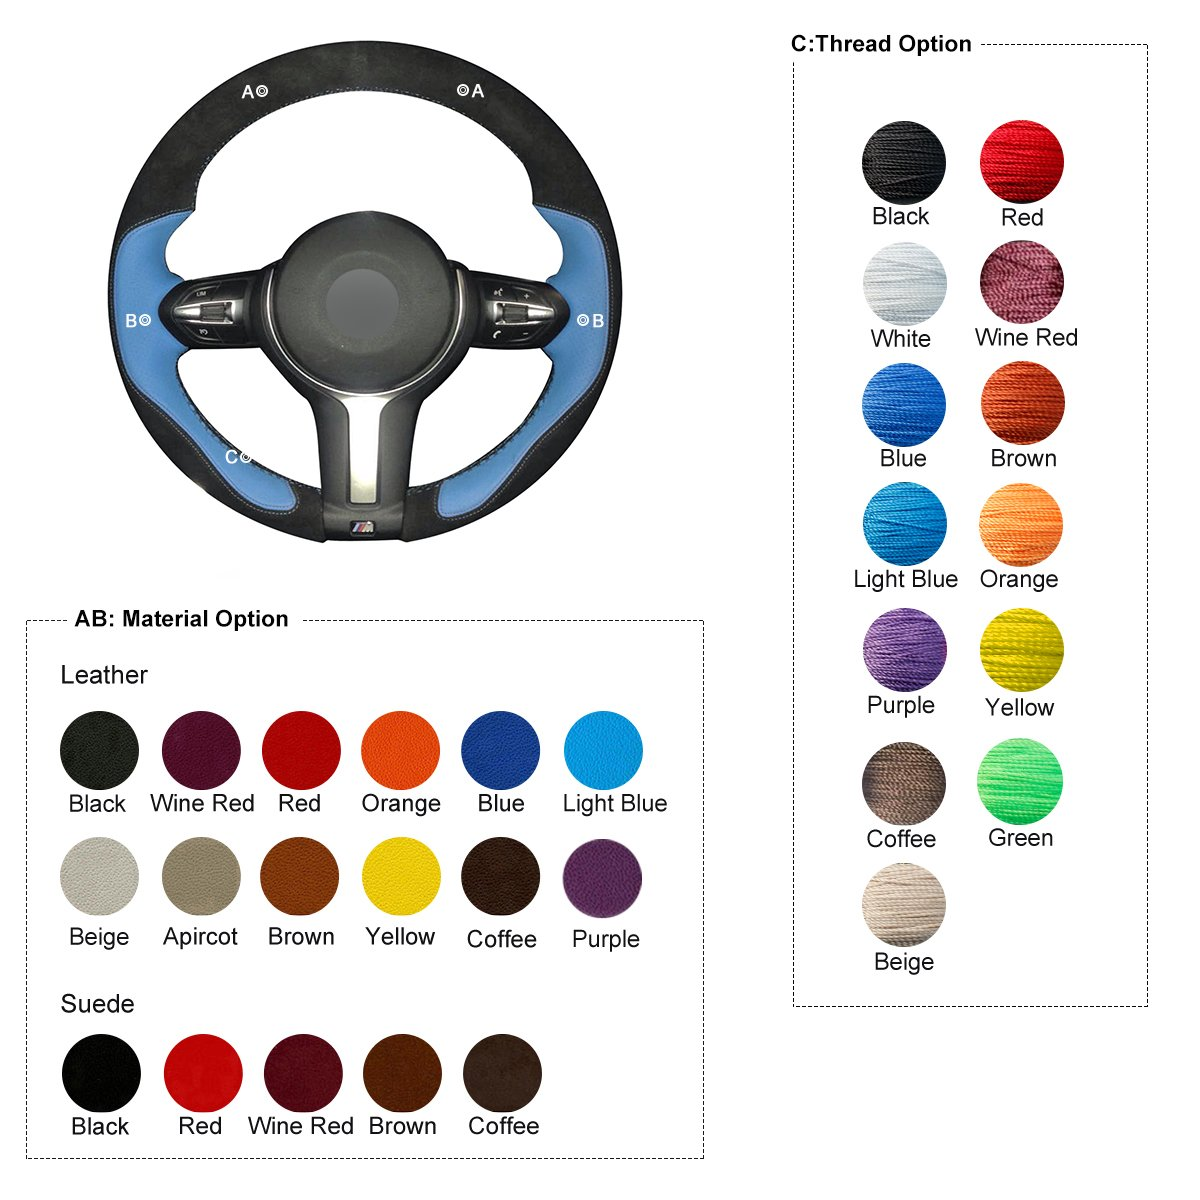 MEWANT Hand Sewing Custom Black Genuine Leather Auto Steering Wheel Cover for BMW F87 M2 2015-2017 F80 M3 2014-2017 F82 M4 M5 F12 F13 M6 F85 X2 X5 M F86 X6 M F33 F30 M Sport